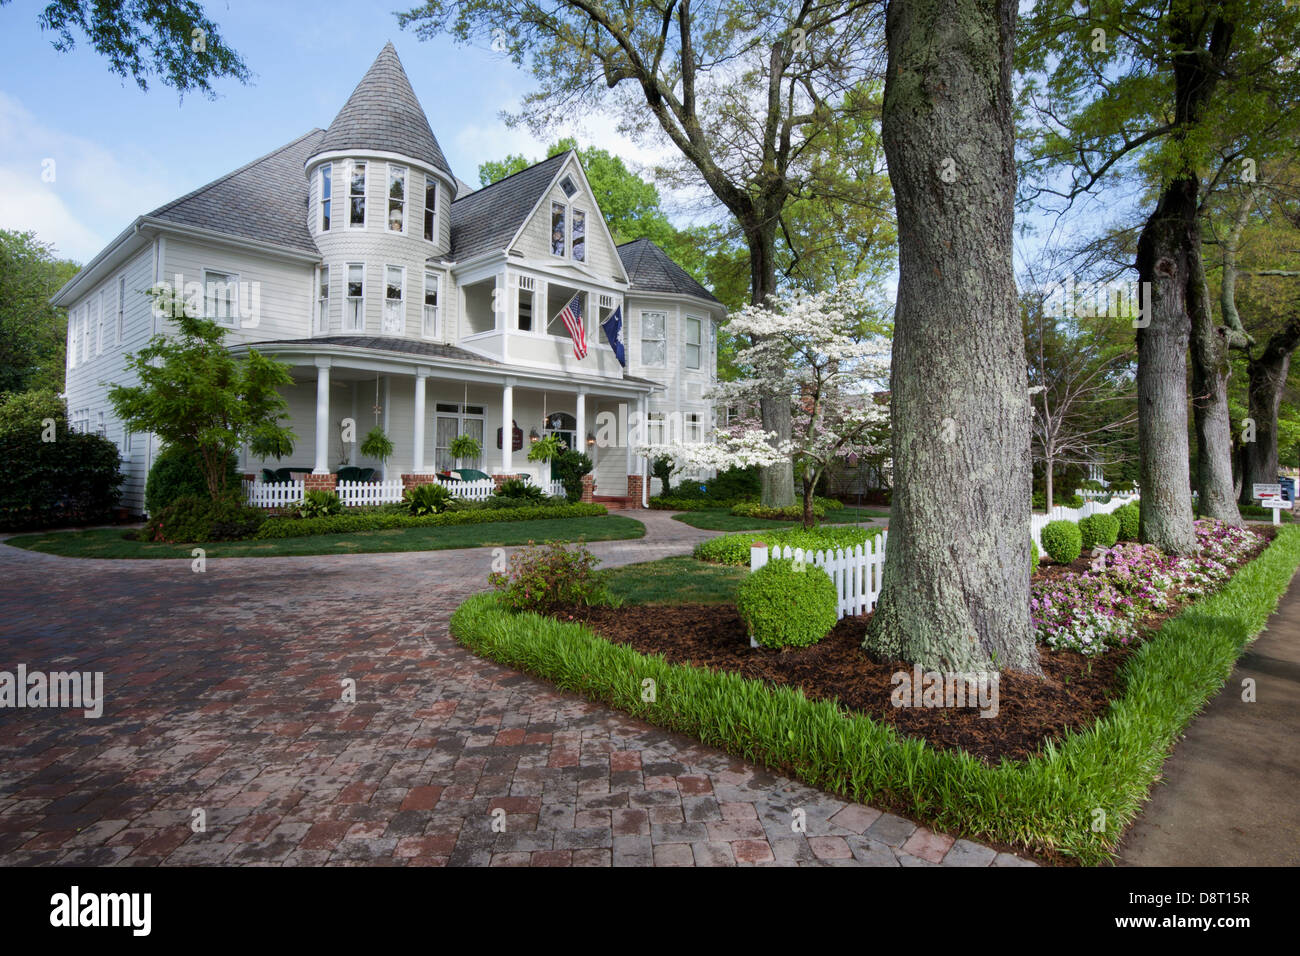 The Garden House Bed and Breakfast in downtown Simpsonville, SC USA is  shown on a - Simpsonville Sc Stock Photos & Simpsonville Sc Stock Images - Alamy